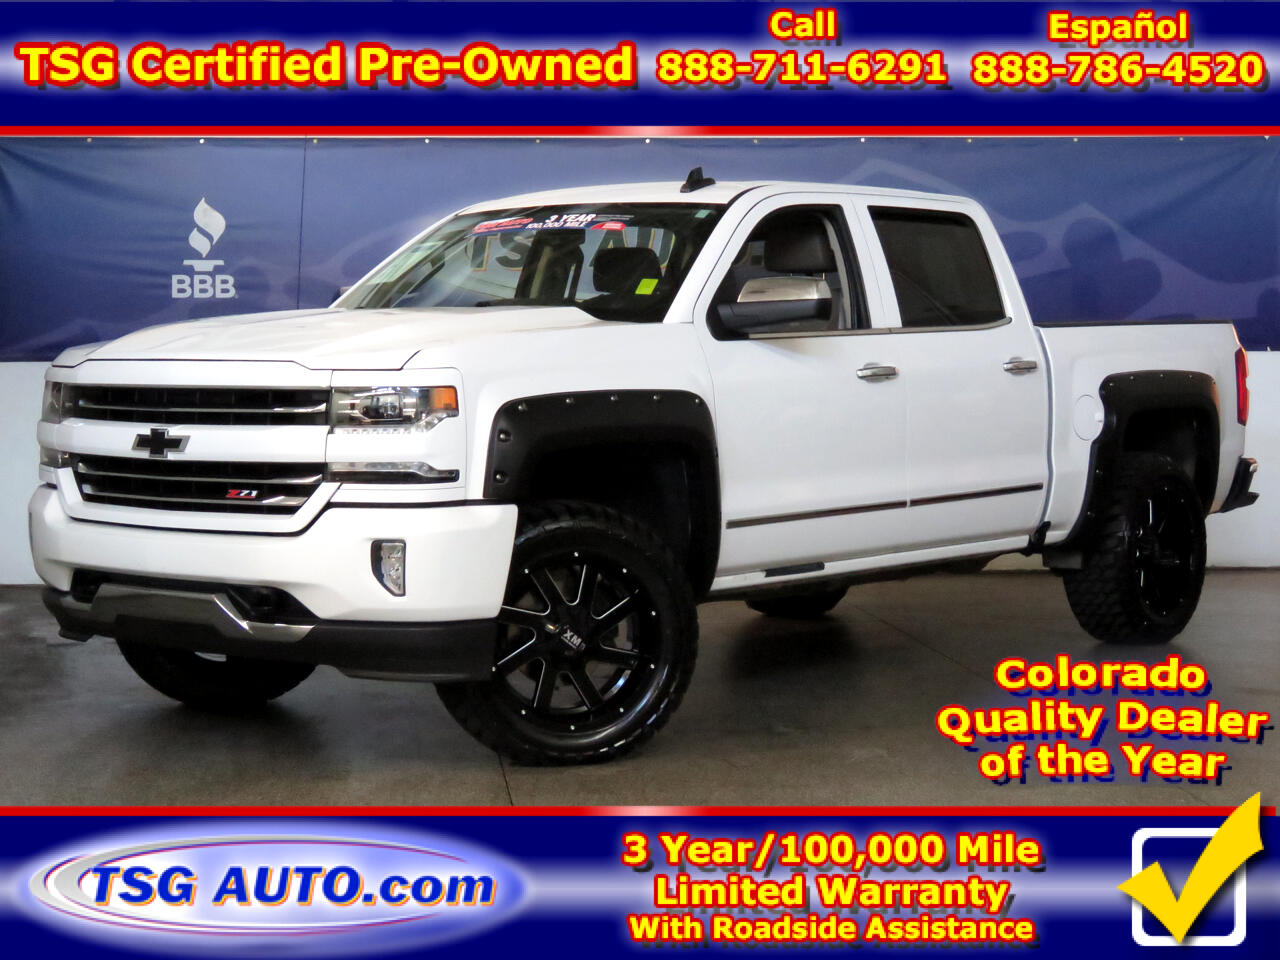 "2016 Chevrolet Silverado 1500 4WD Crew Cab 143.5"" LTZ Z71 W/Lift/Wheels/Tires"